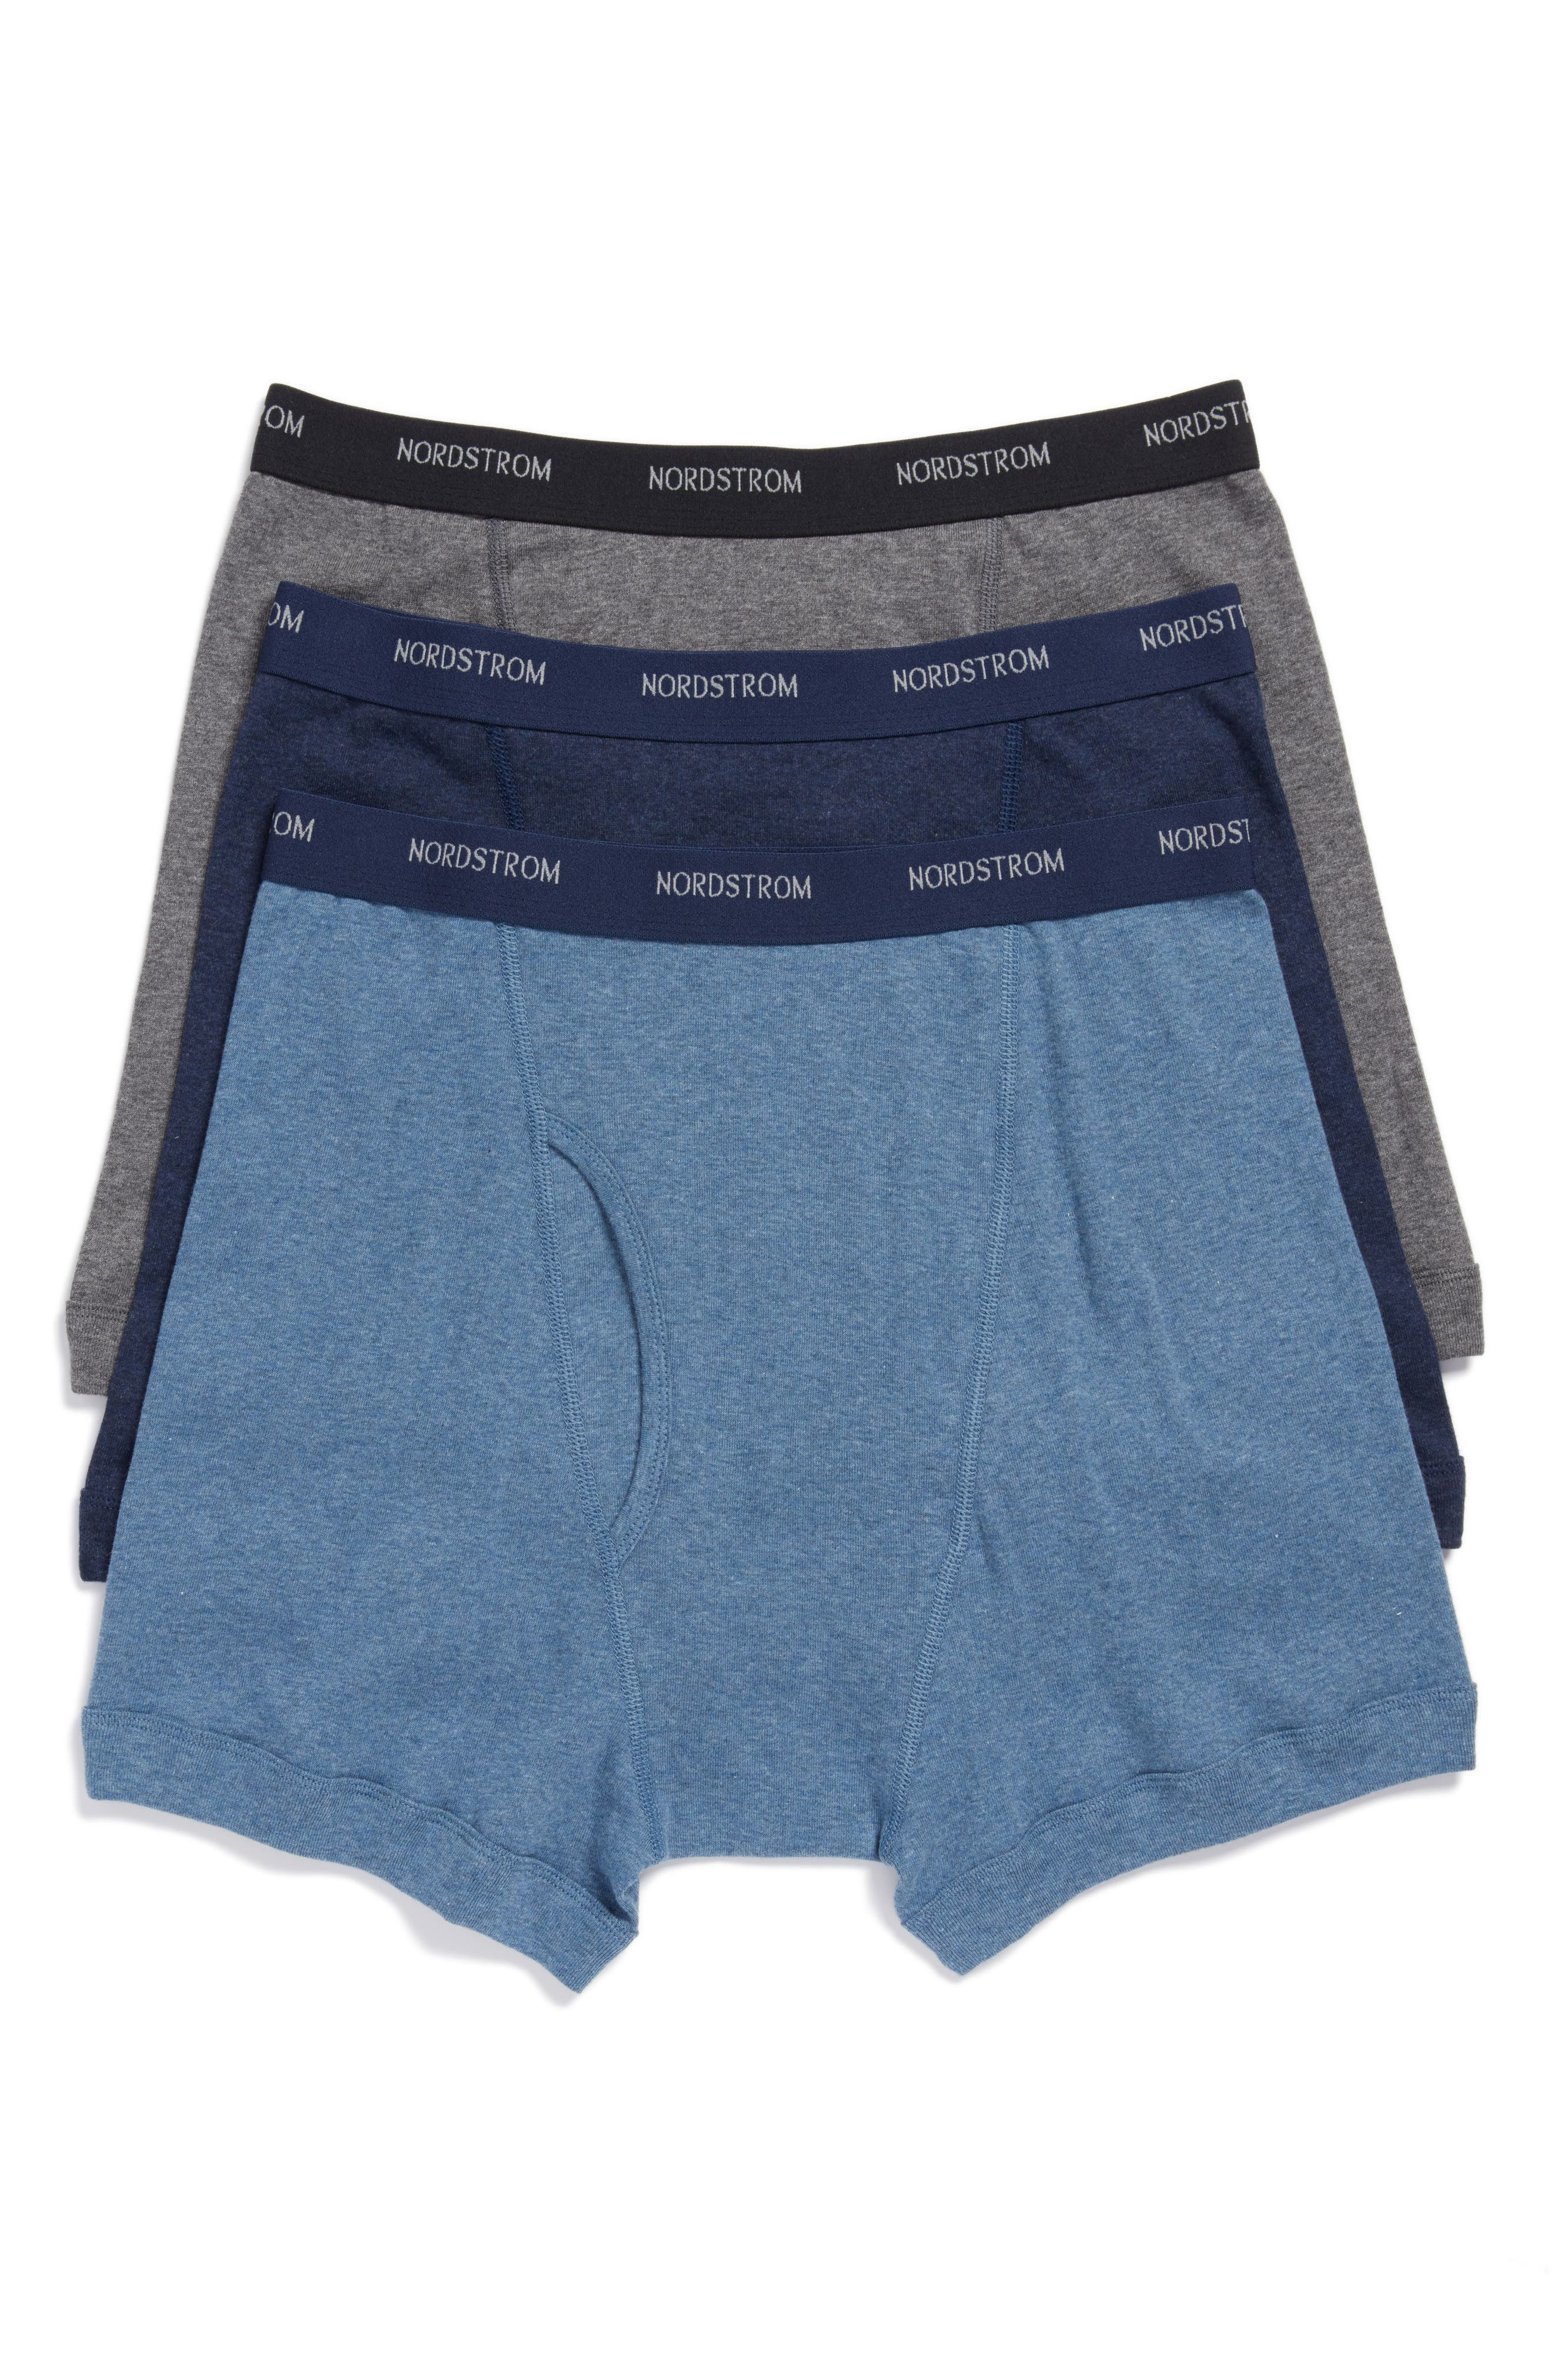 3-Pack Supima<sup>®</sup> Cotton Boxer Briefs,                         Main,                         color, NAVY/ CHARCOAL/ BLUE